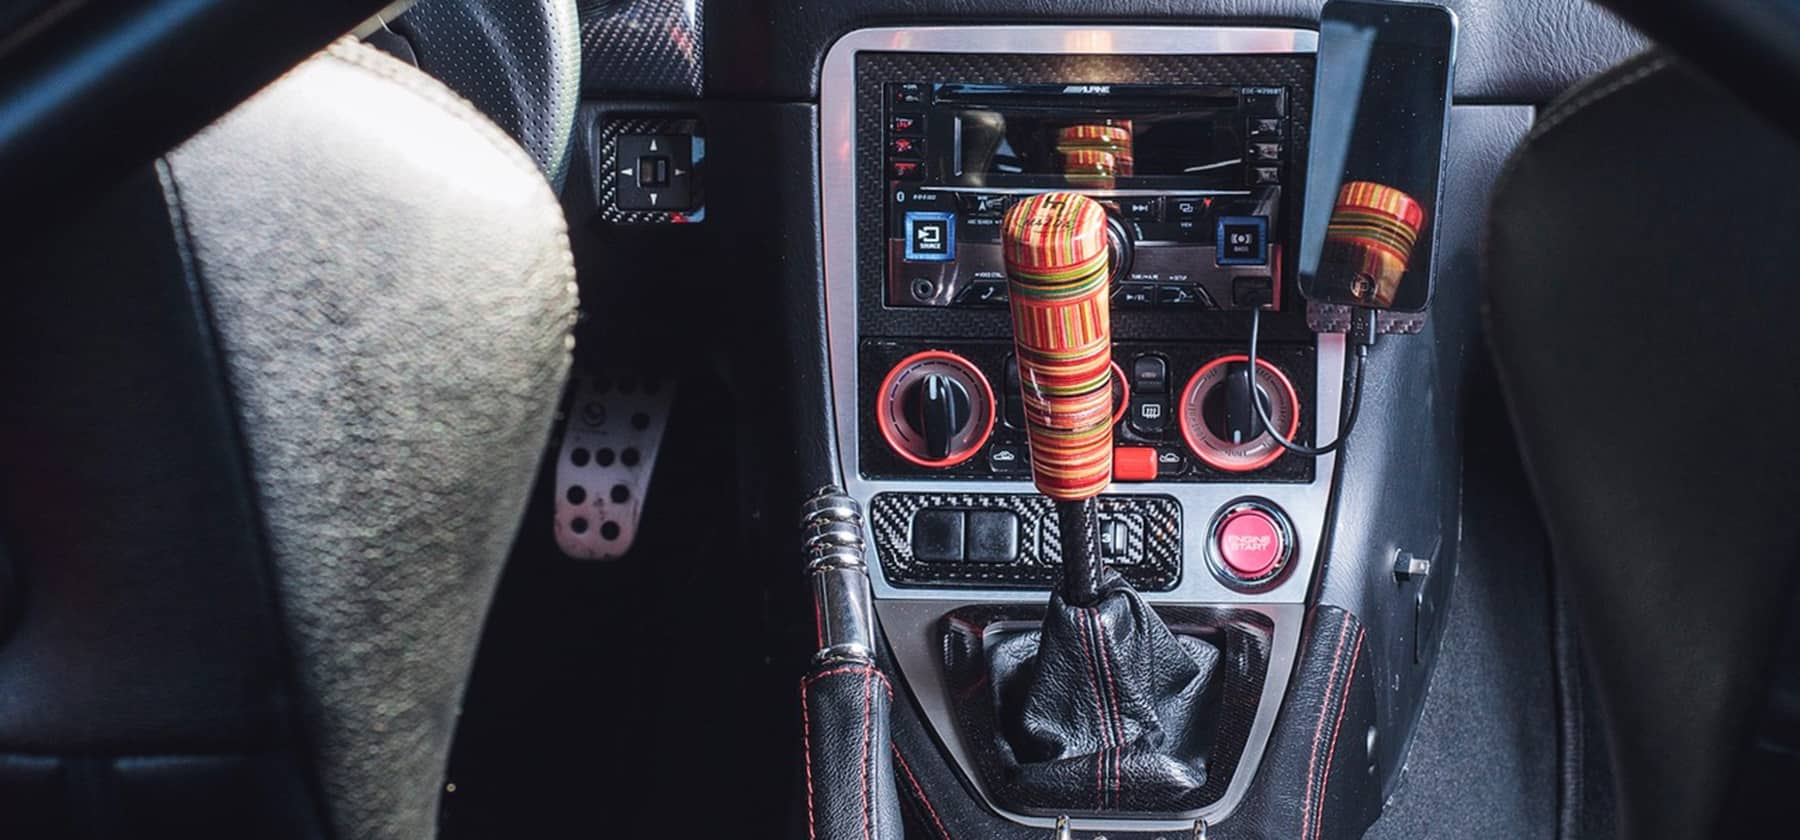 mx5 dildo shift knob